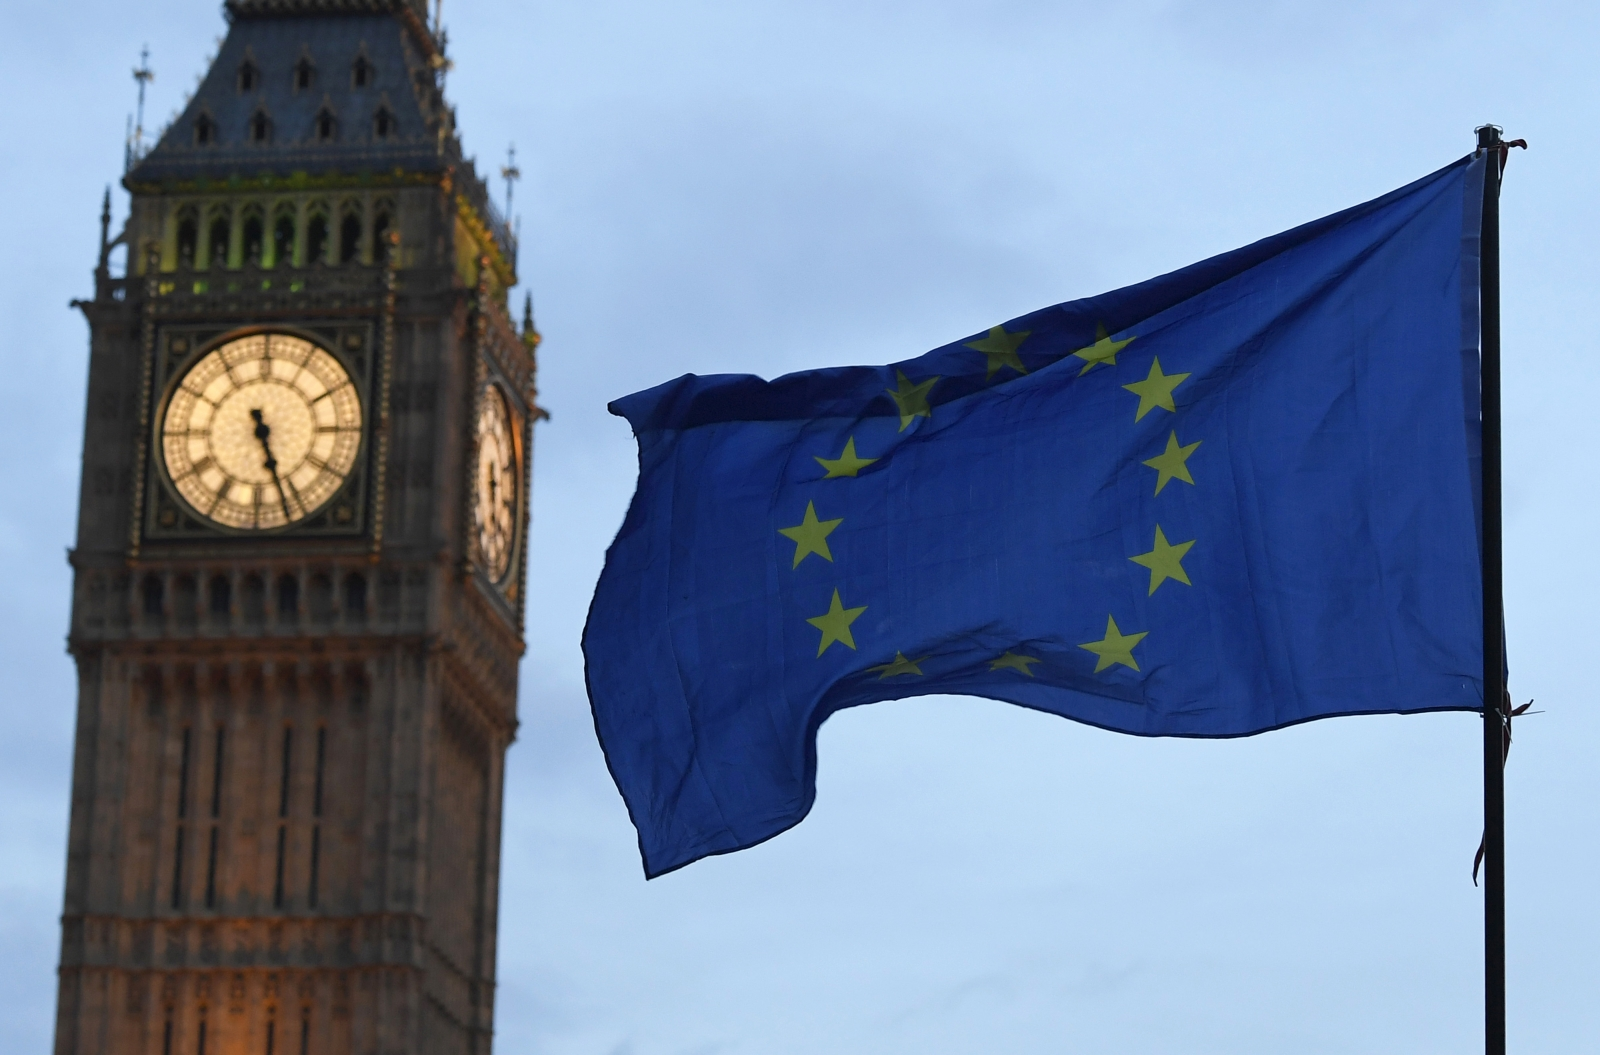 European flag big ben